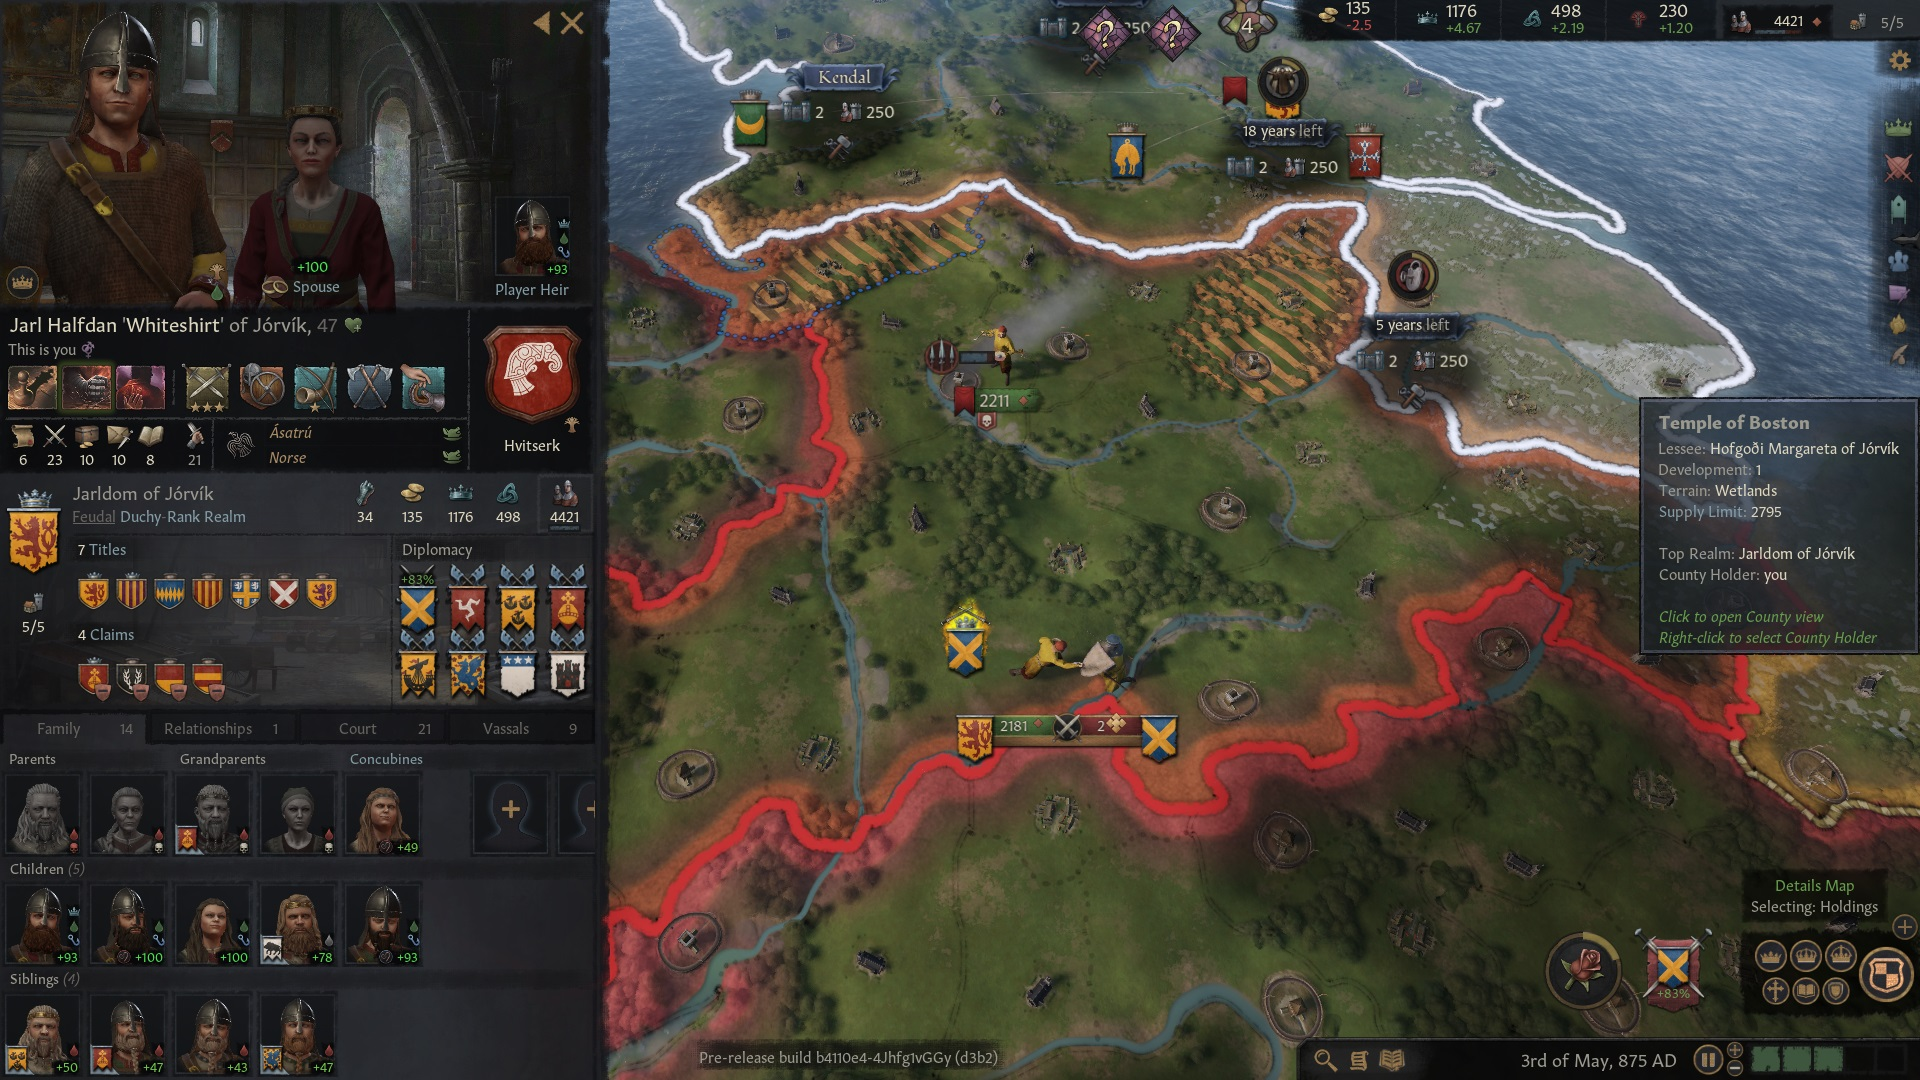 King of the Ants: Crusader Kings 3's 20,000 characters are silent workers  powering a medieval sandbox | Strategy Gamer